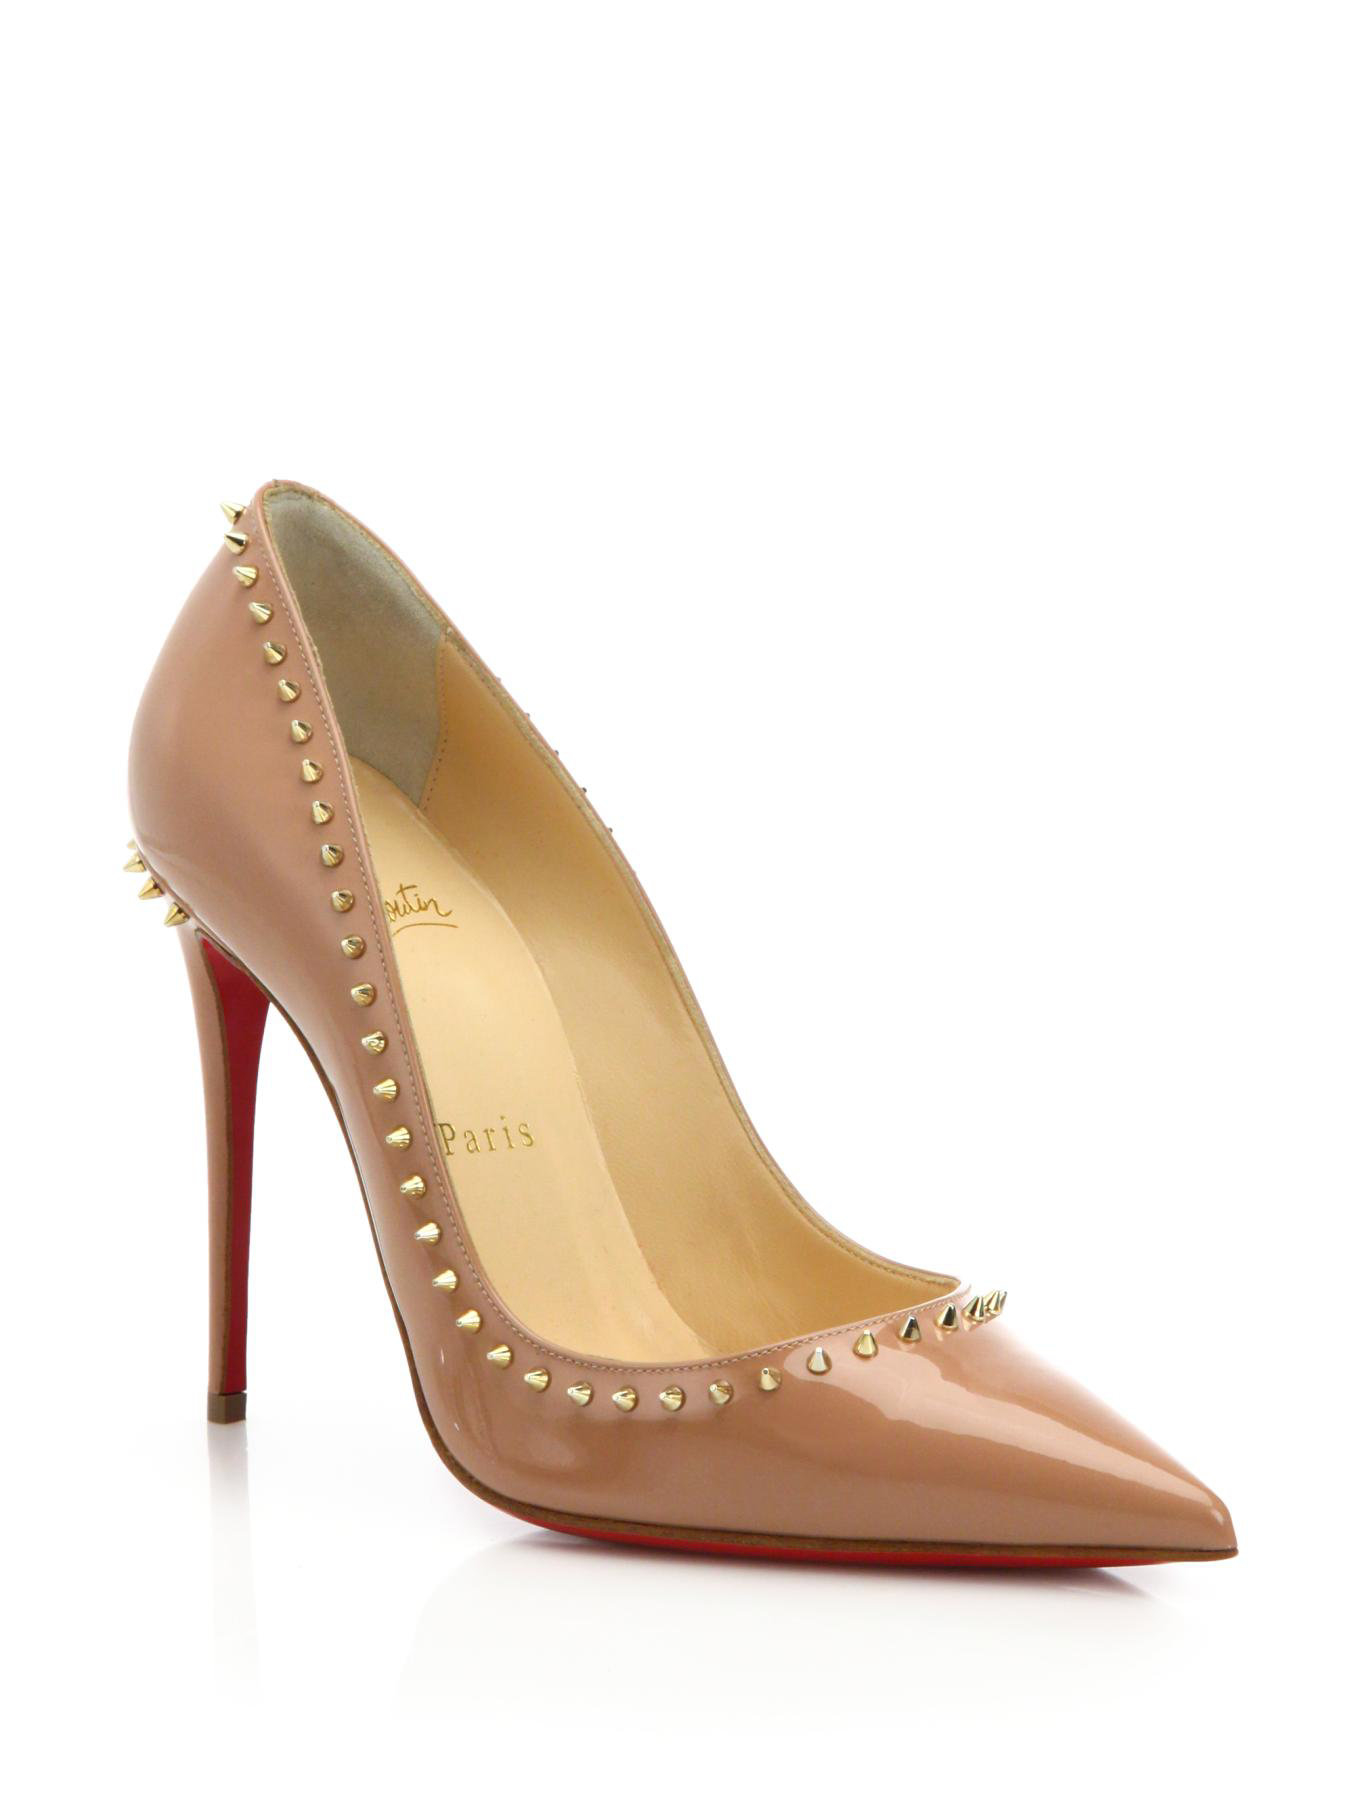 christian louboutin patent leather spike embellished pumps